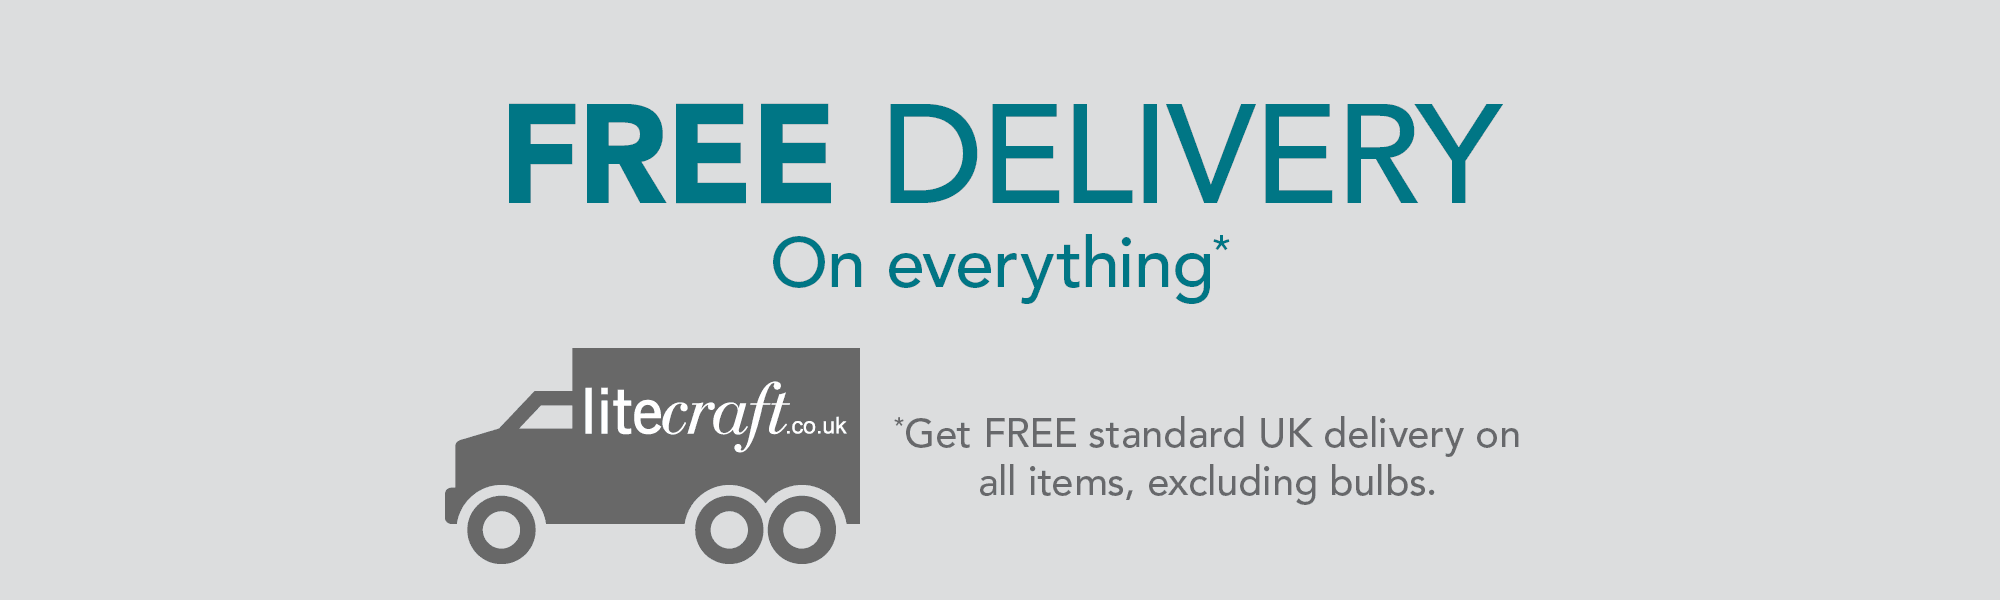 FREE Standard UK Delivery on All Items. Excluding Bulbs